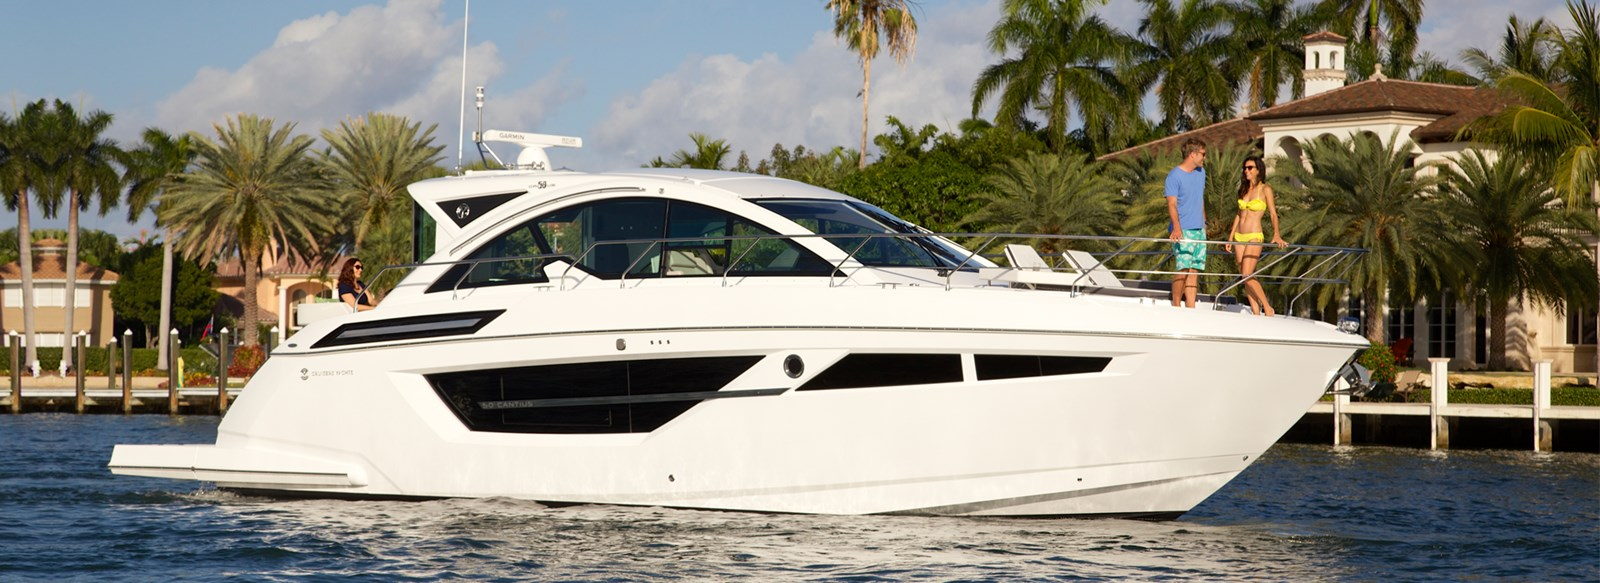 New Cruisers 50 Cantius Yachts For Sale